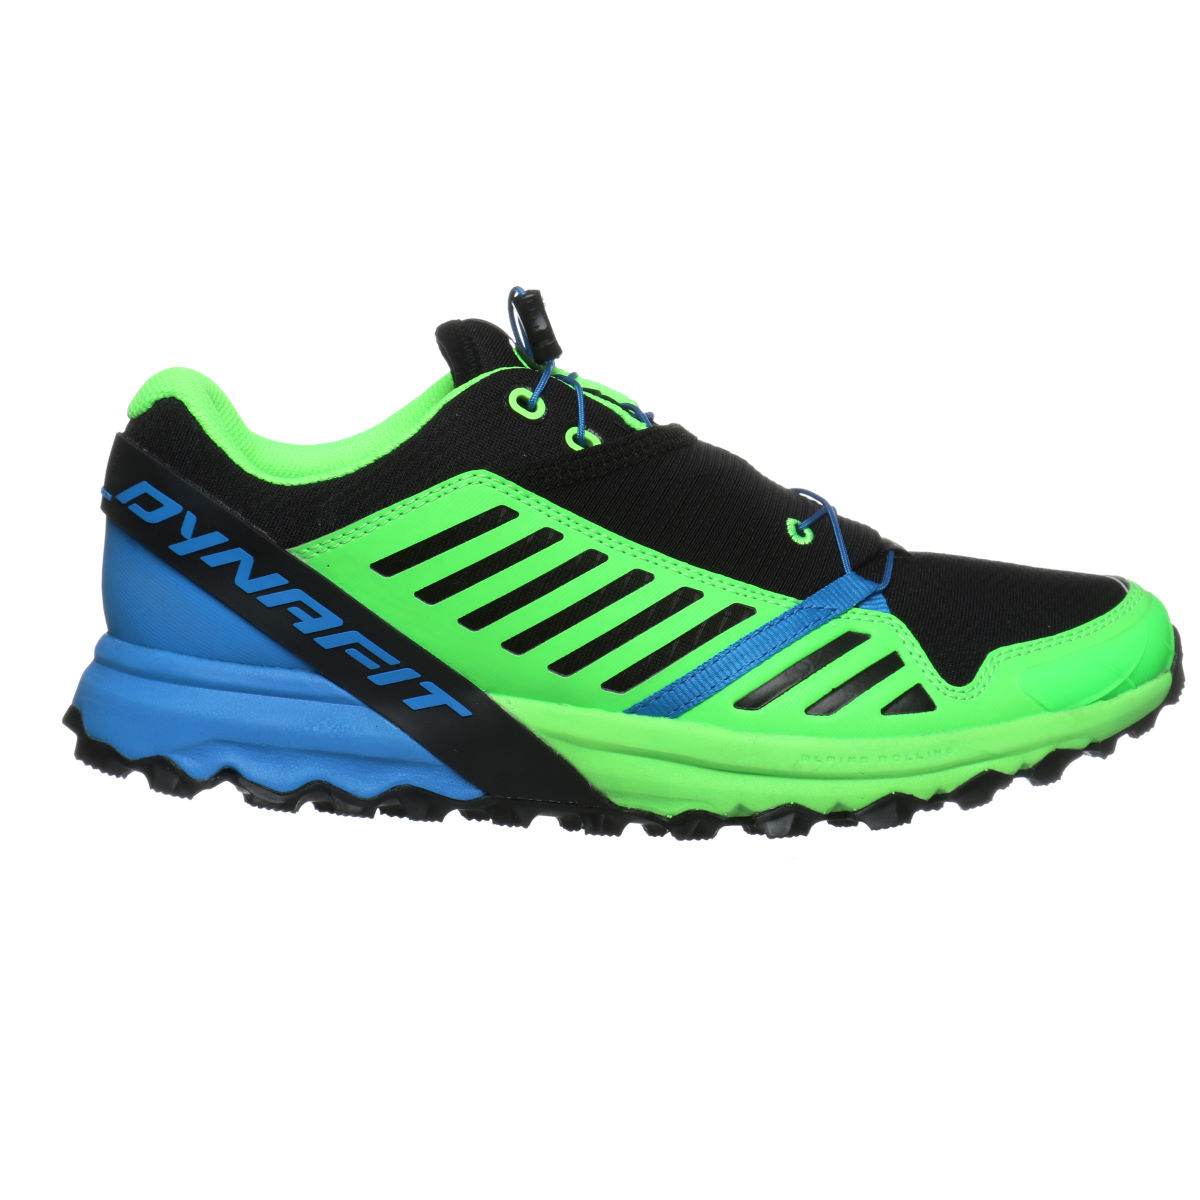 Chaussures Dynafit Alpine Pro - 10,5 UK Blue/Green